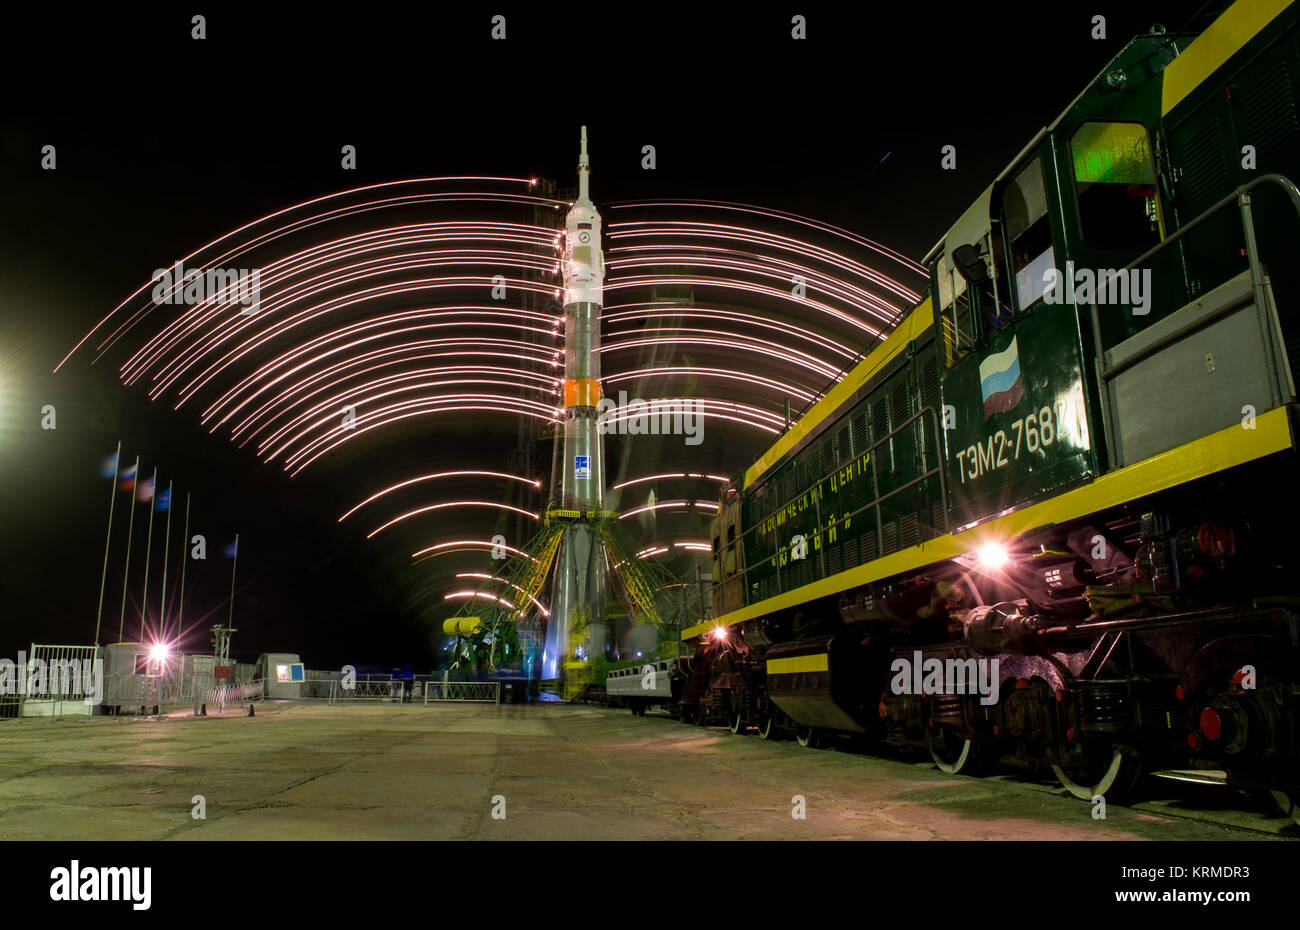 The gantry arms close around the Soyuz TMA-20M spacecraft to secure the rocket, as seen in this long exposure photograph Stock Photo